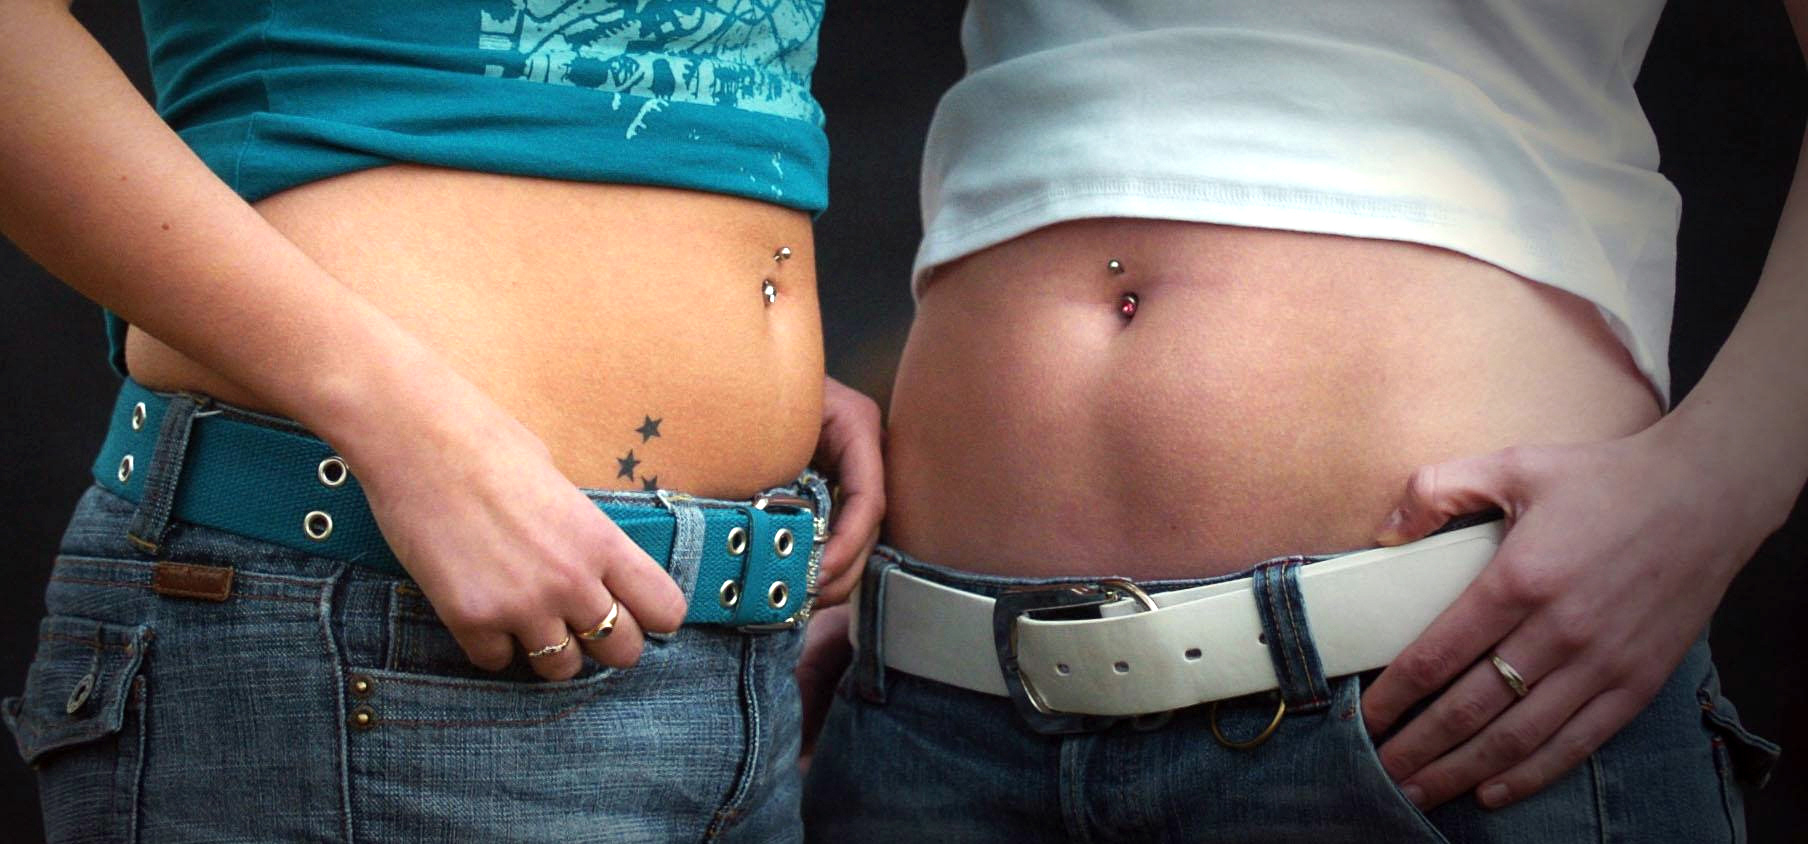 a3528de0b Ban on 'intimate' piercings including tongue piercings for under 18s in  Wales from today